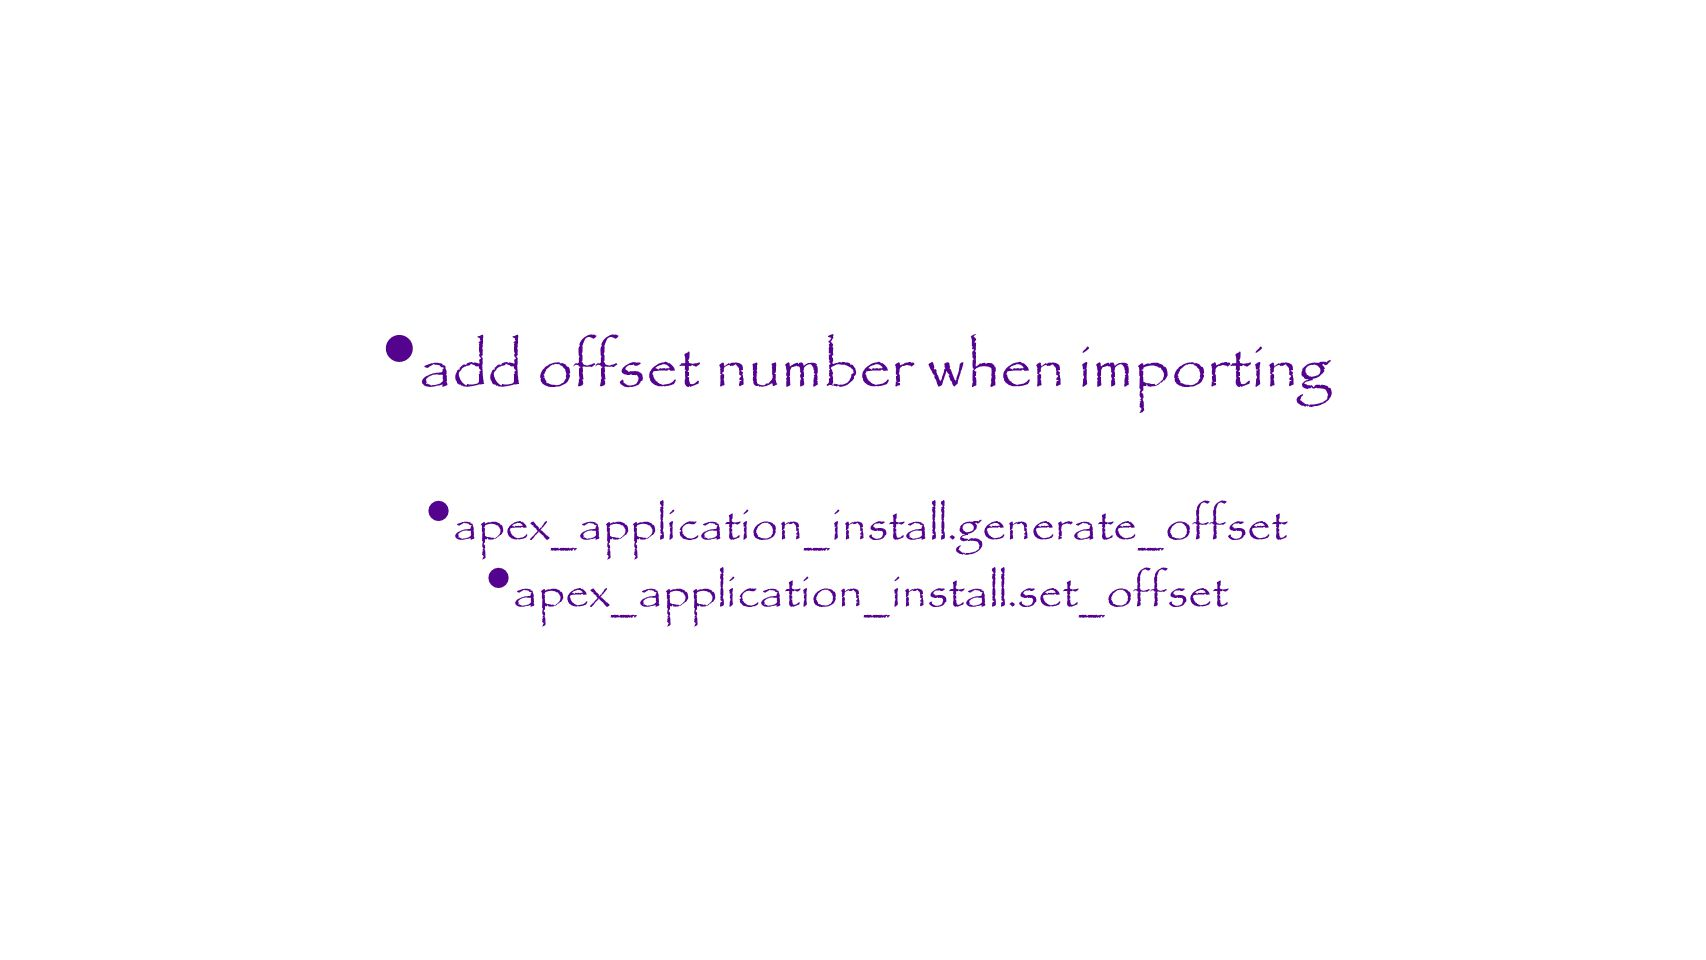 add offset number when importing